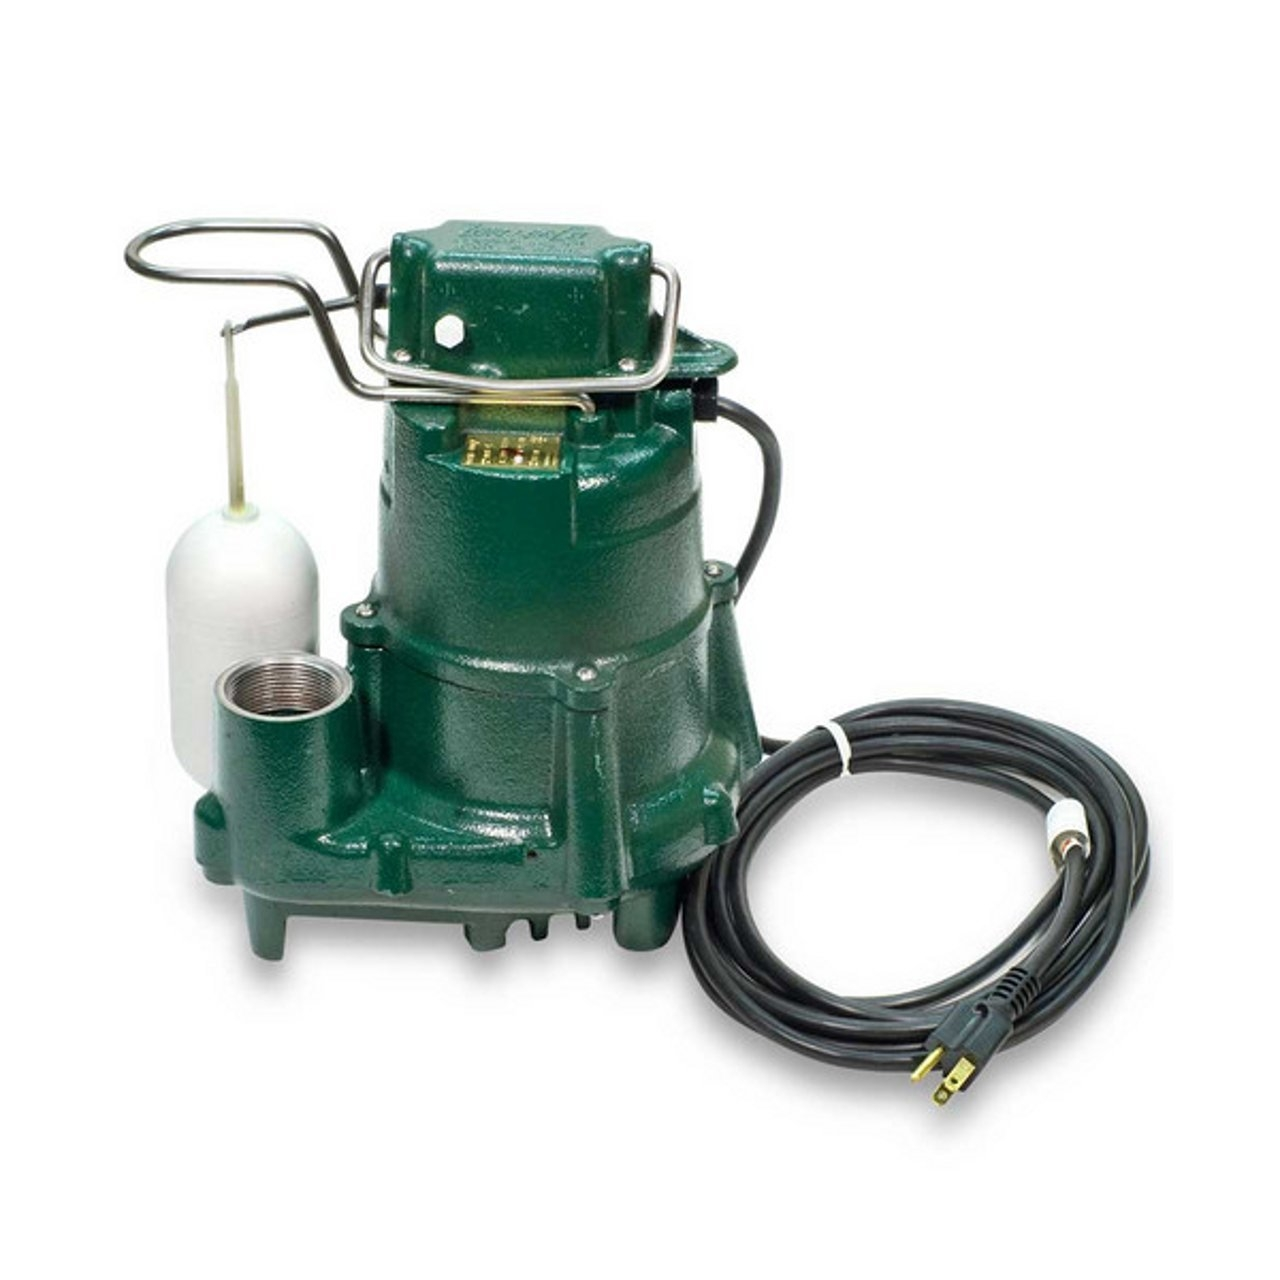 Zoeller Sewage Pumps For Basements